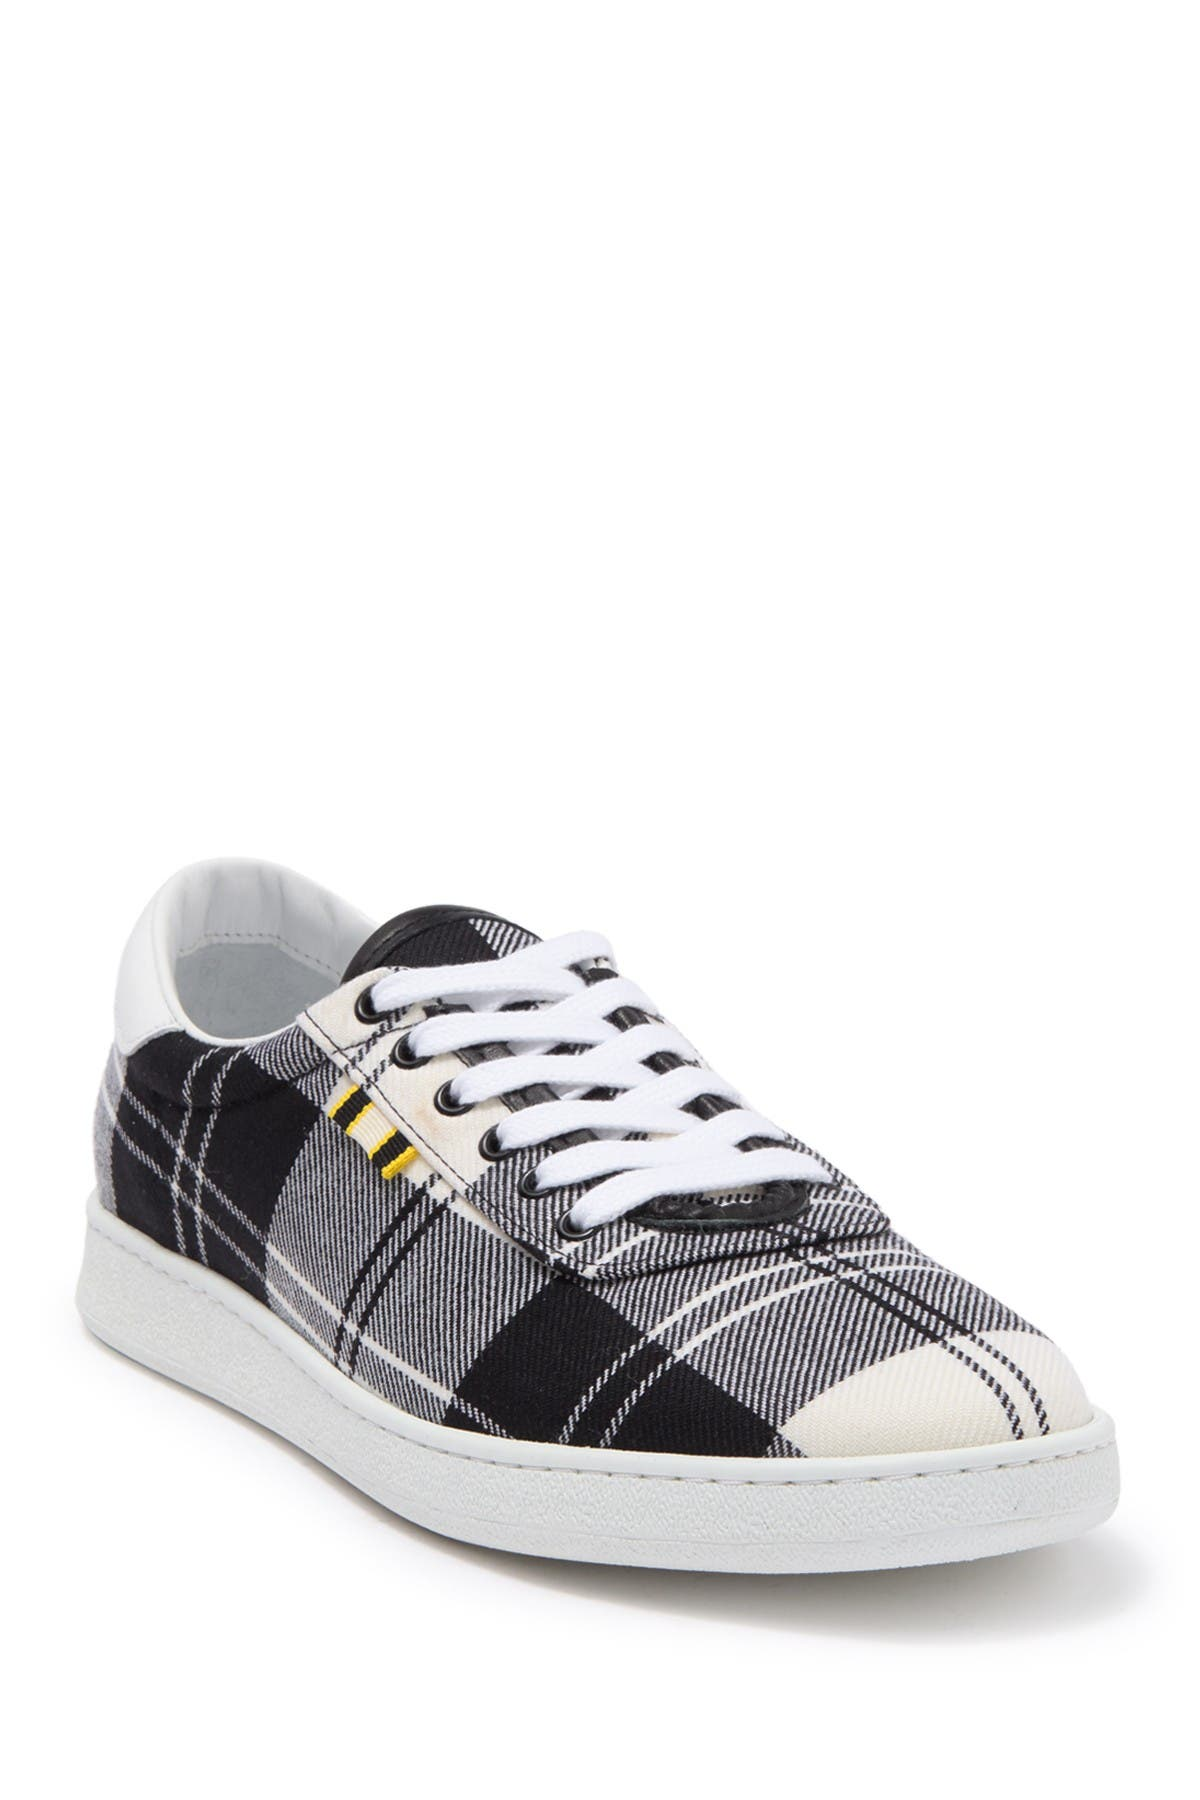 Image of Aprix Canvas Sneaker